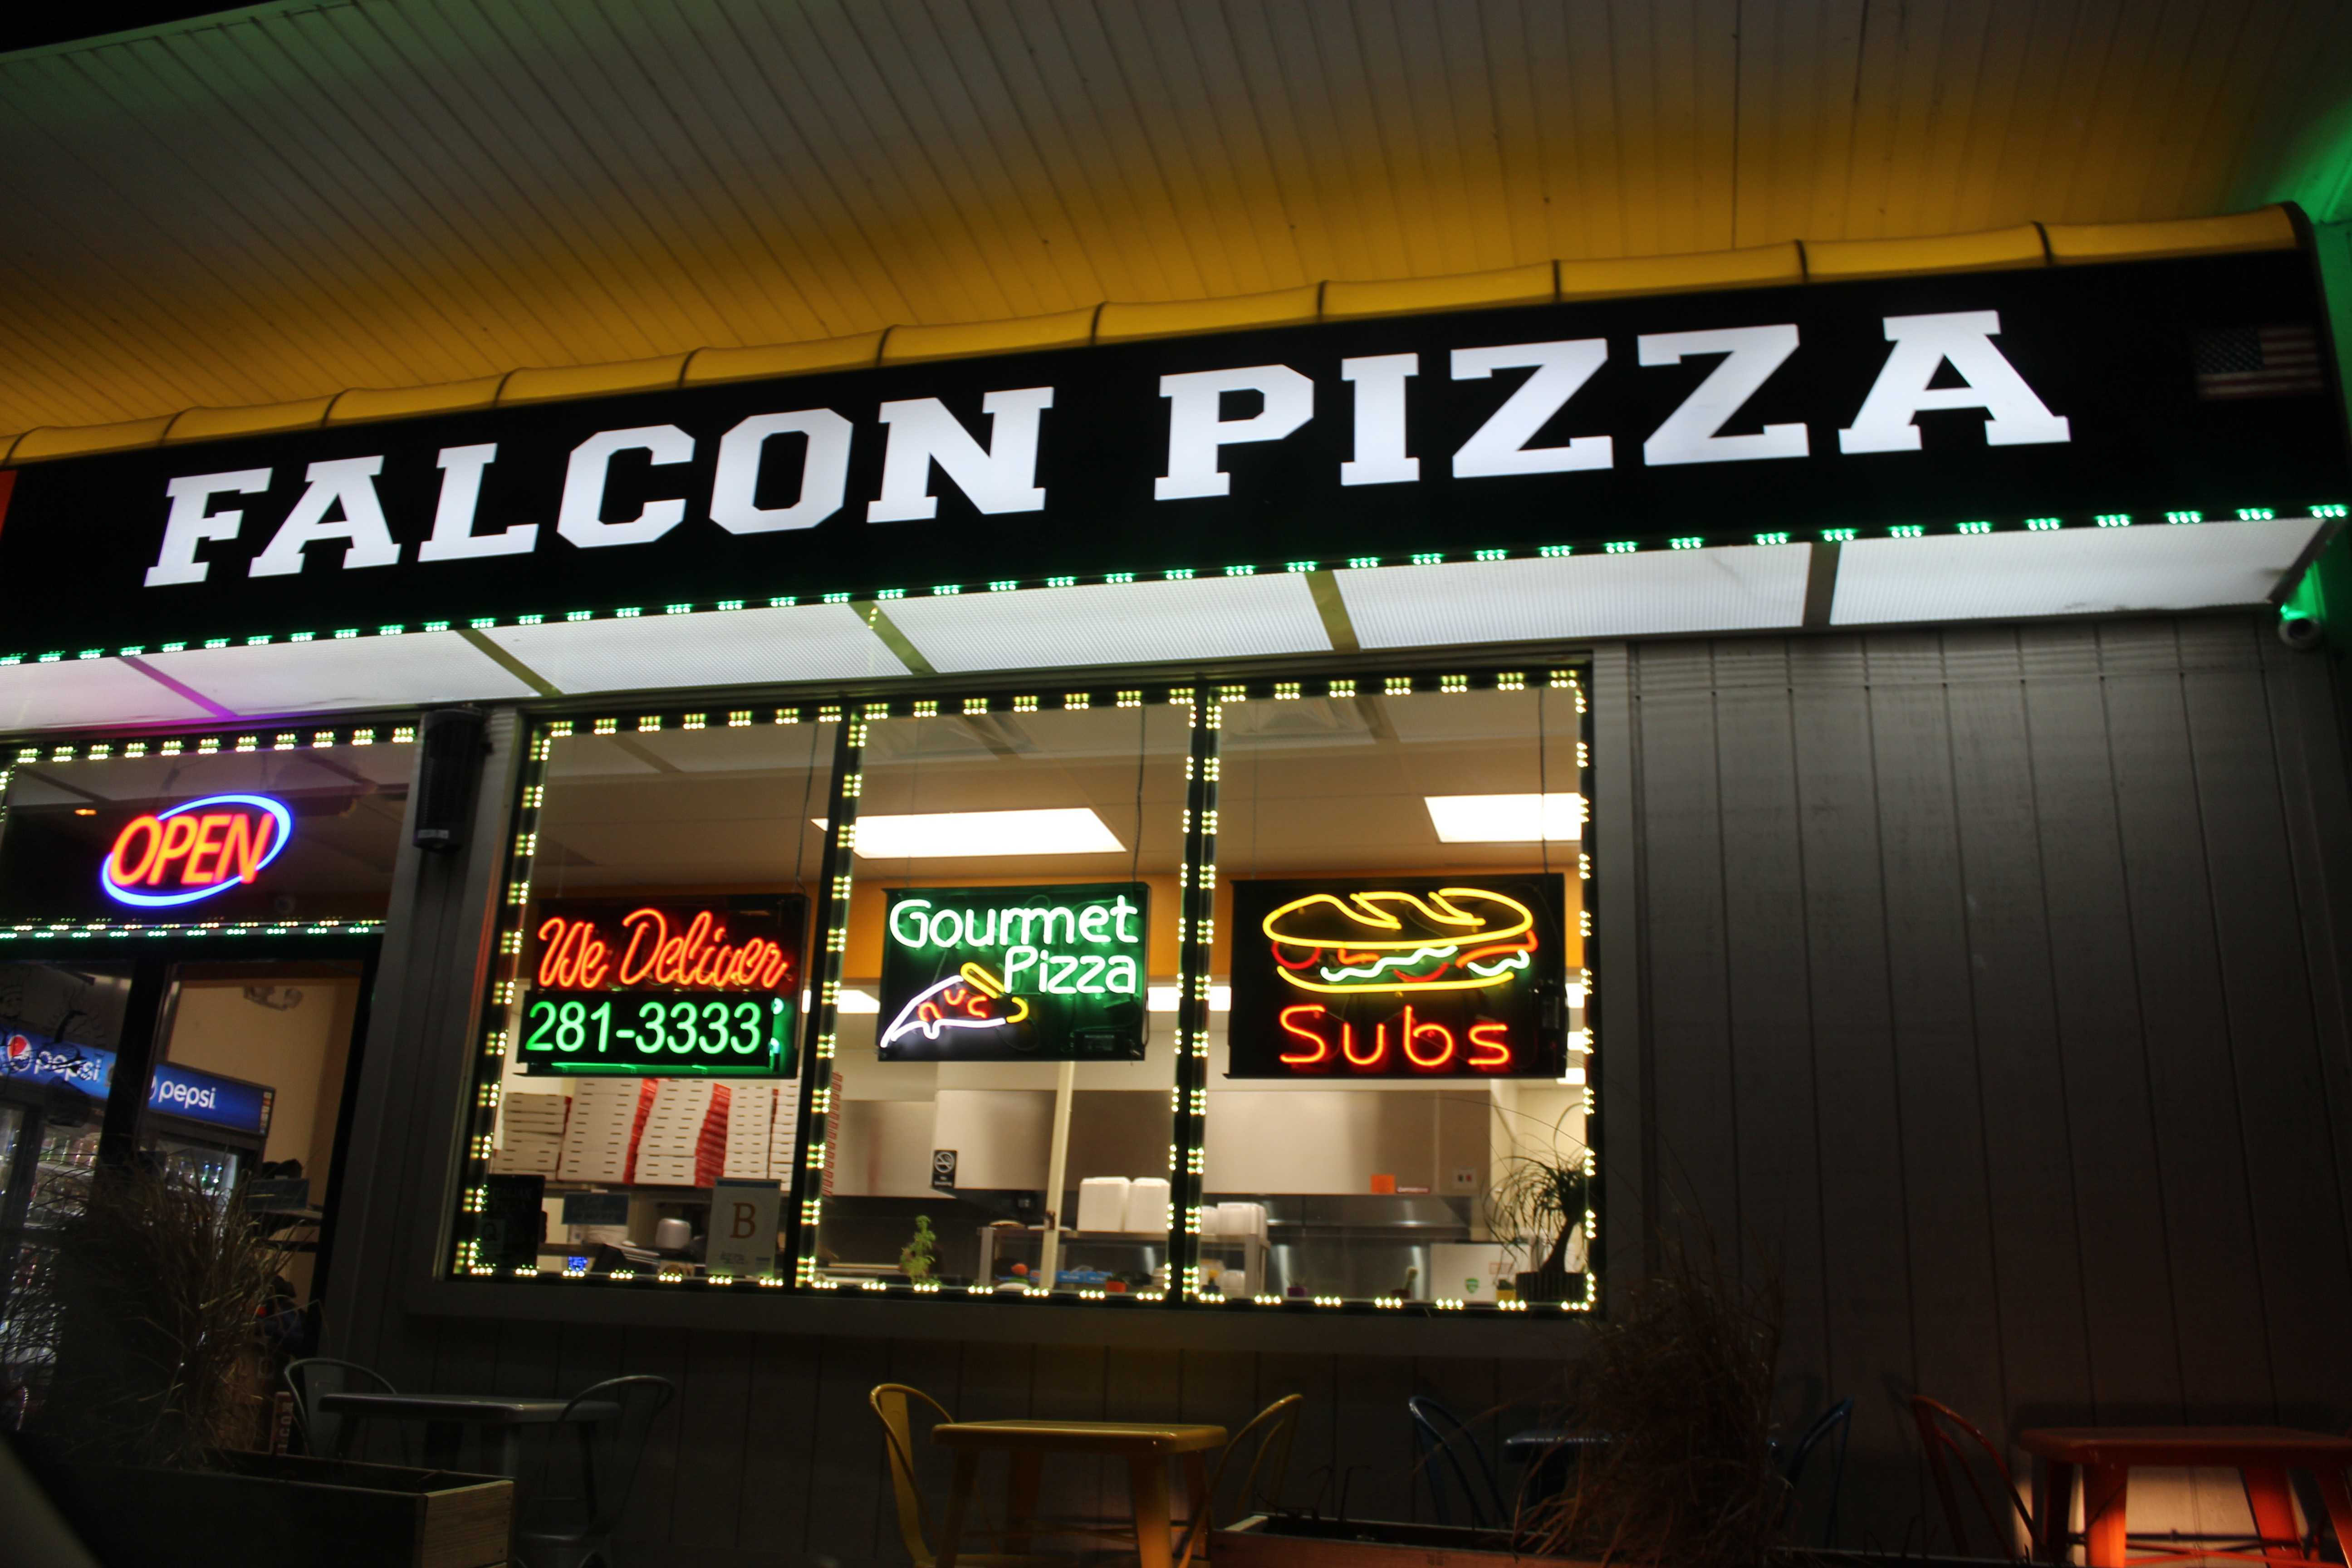 From Bobcat Pizza to Falcon Pizza